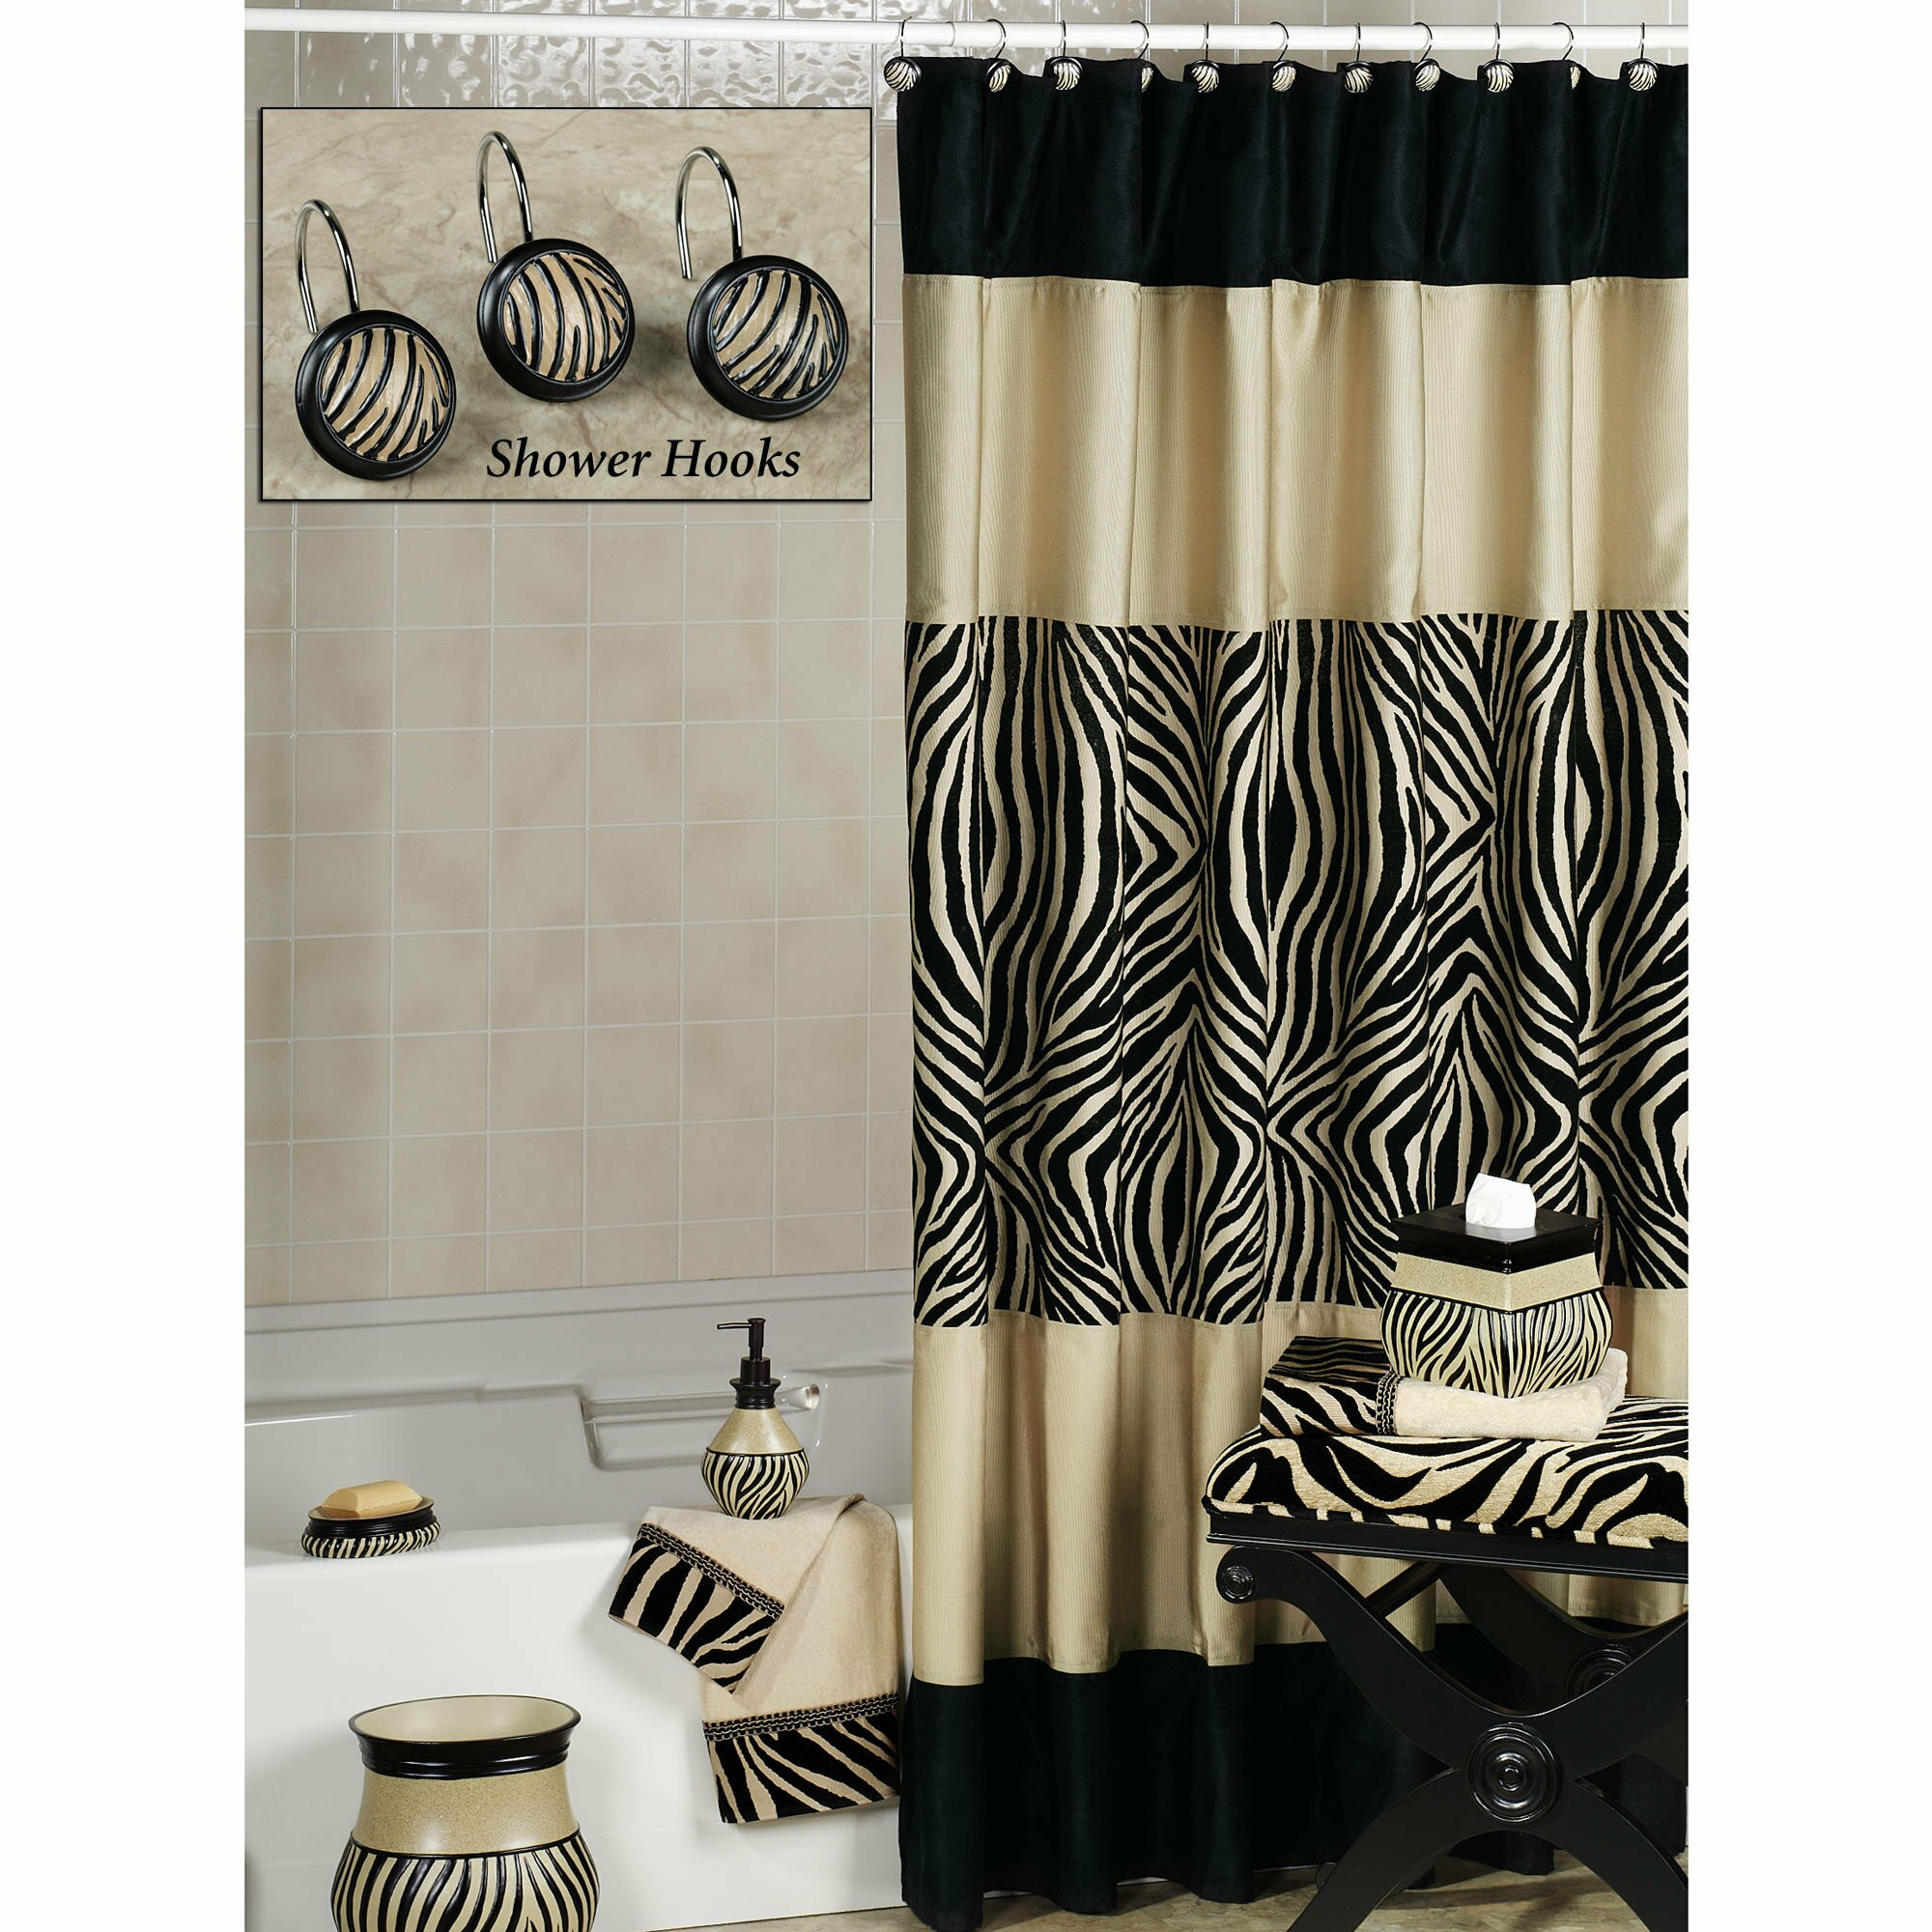 strikingly curtains curtain set elegant bathroom sets idea com bath shower christmas of inspirational furniture fabric dkbzaweb walmart